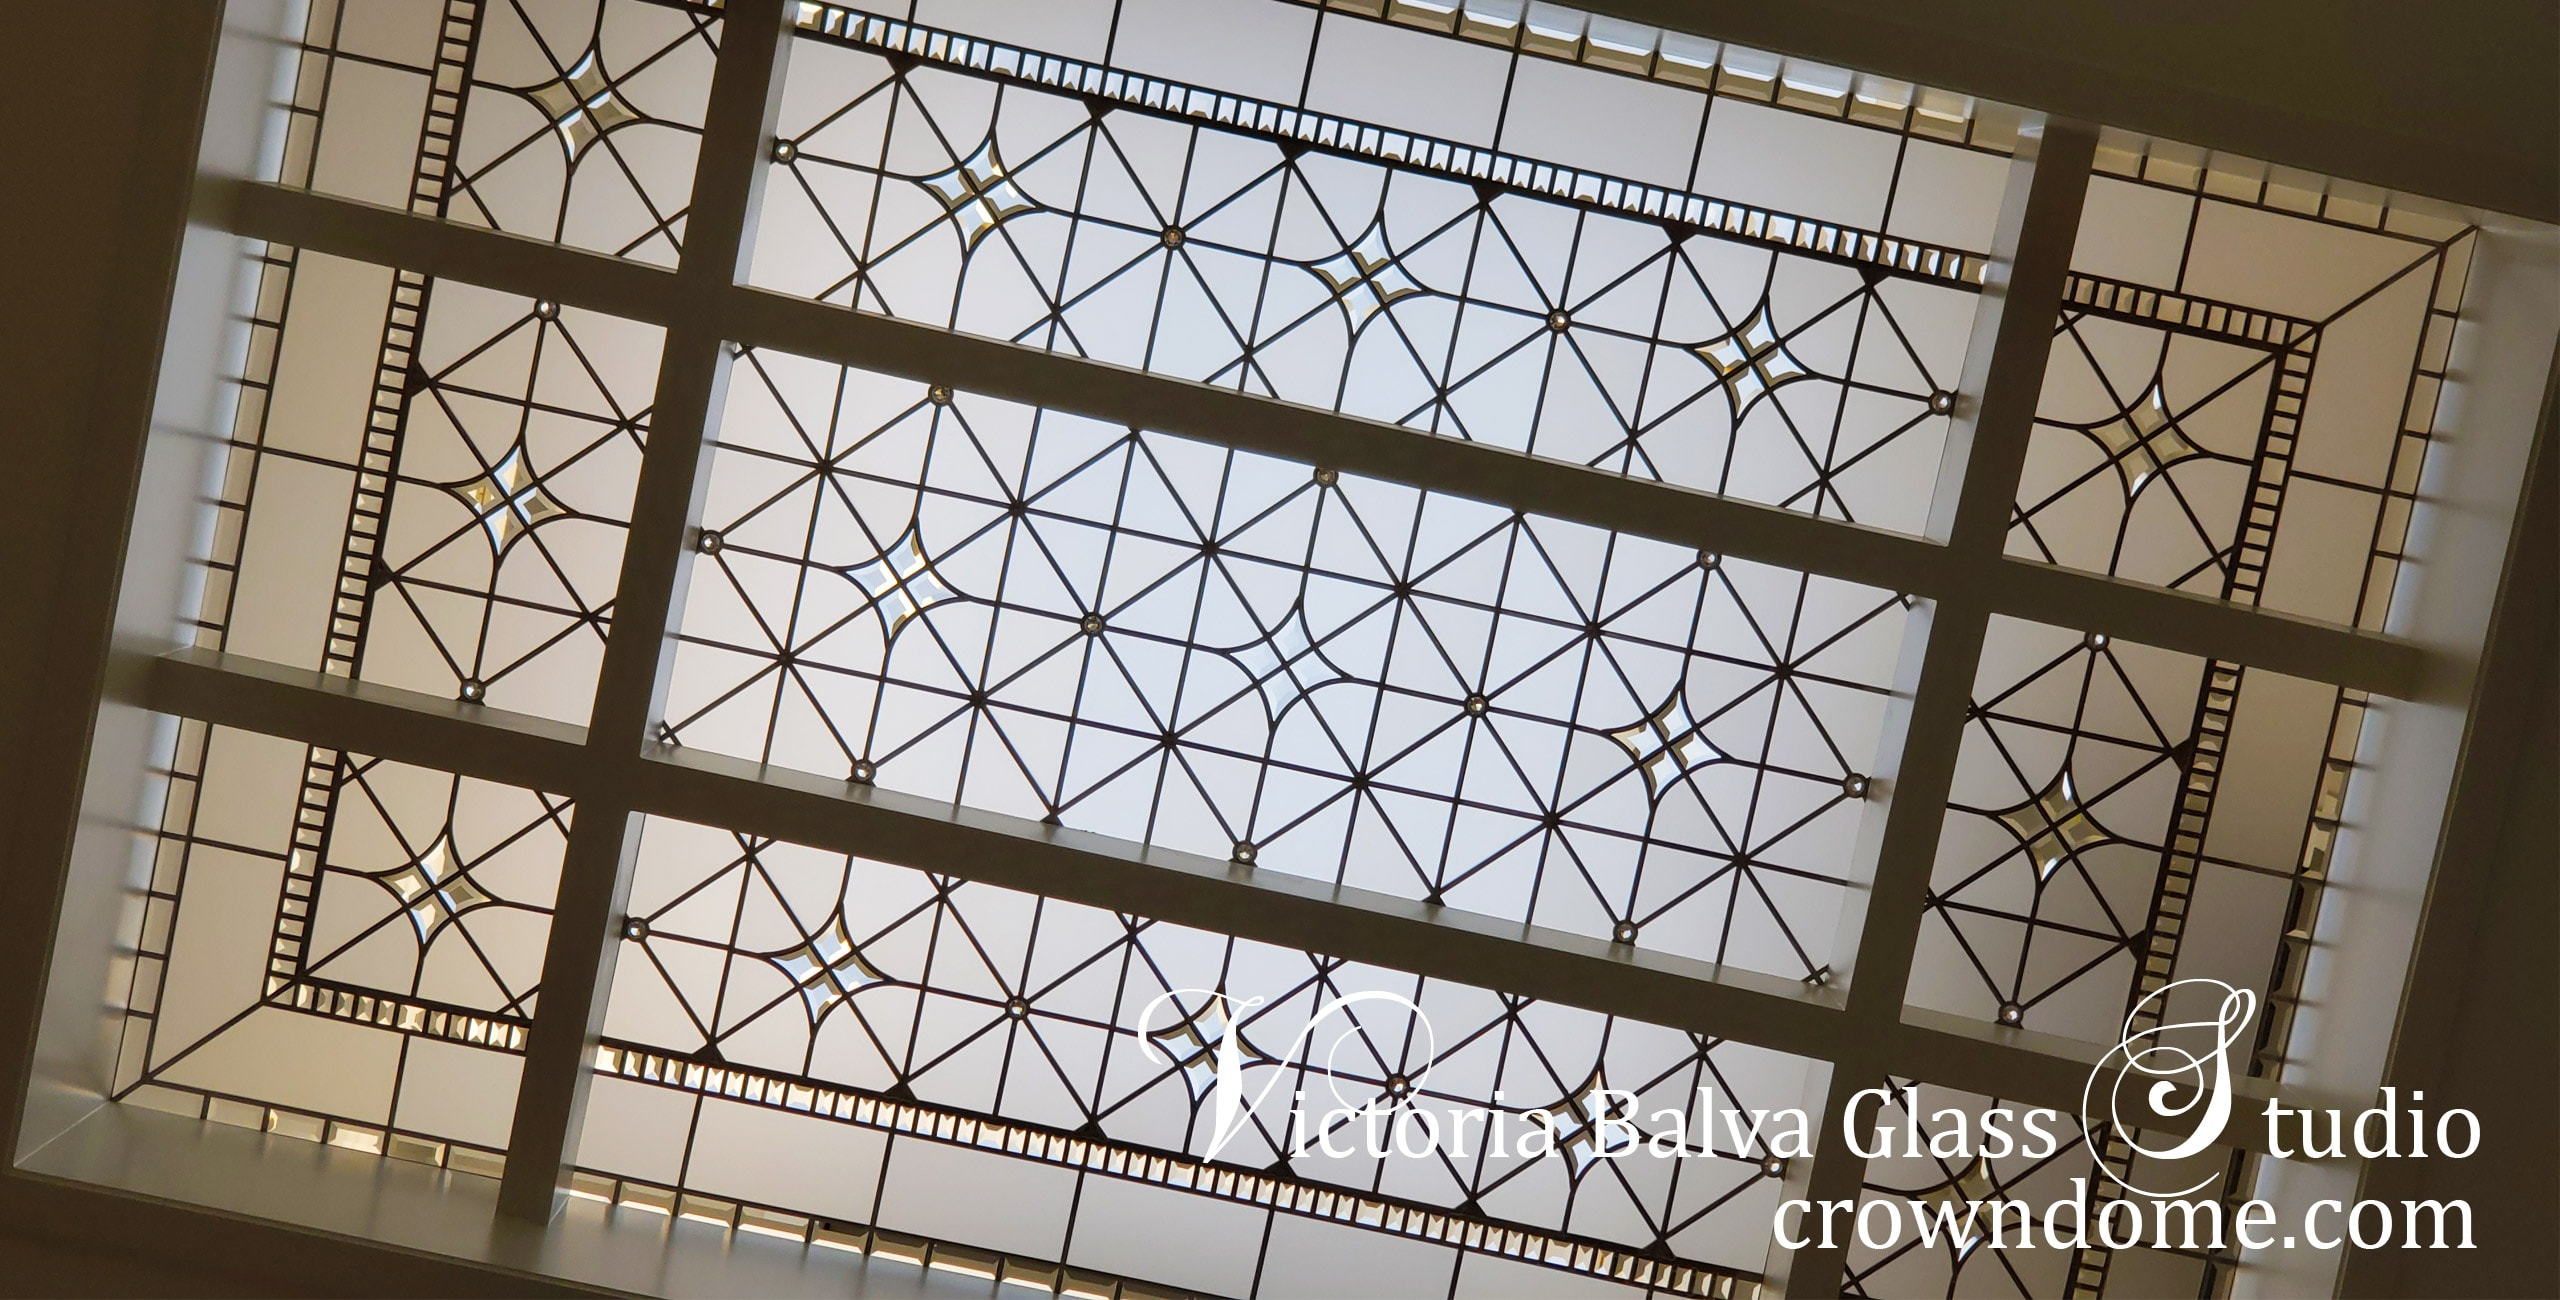 Classically inspired architectural art glass skylight custom designed and fabricated for a luxury custom built real estate in Thornhill, ON